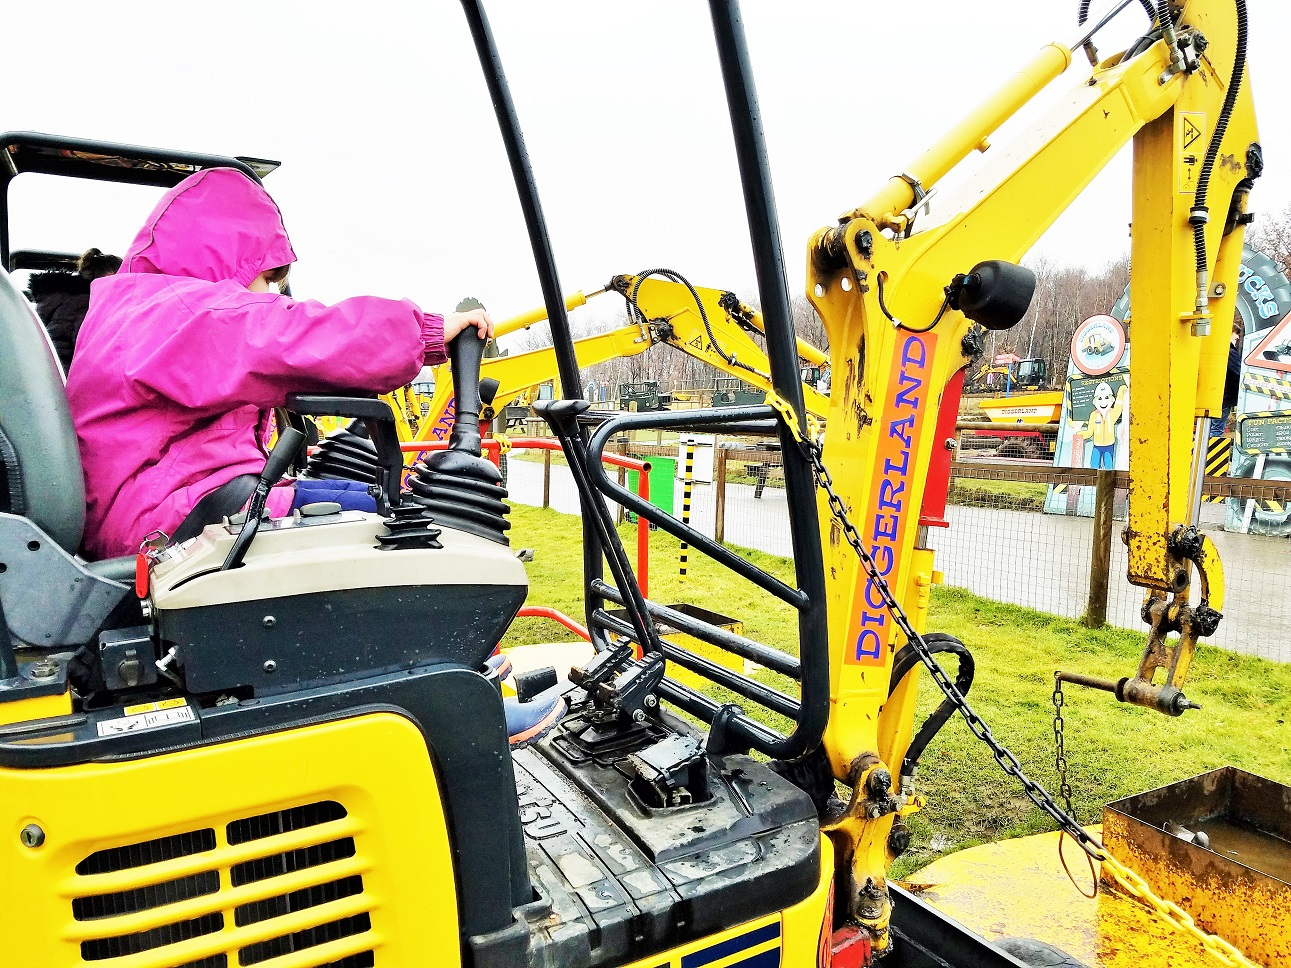 Diggerland in the rain - child operating digger arm at diggerland